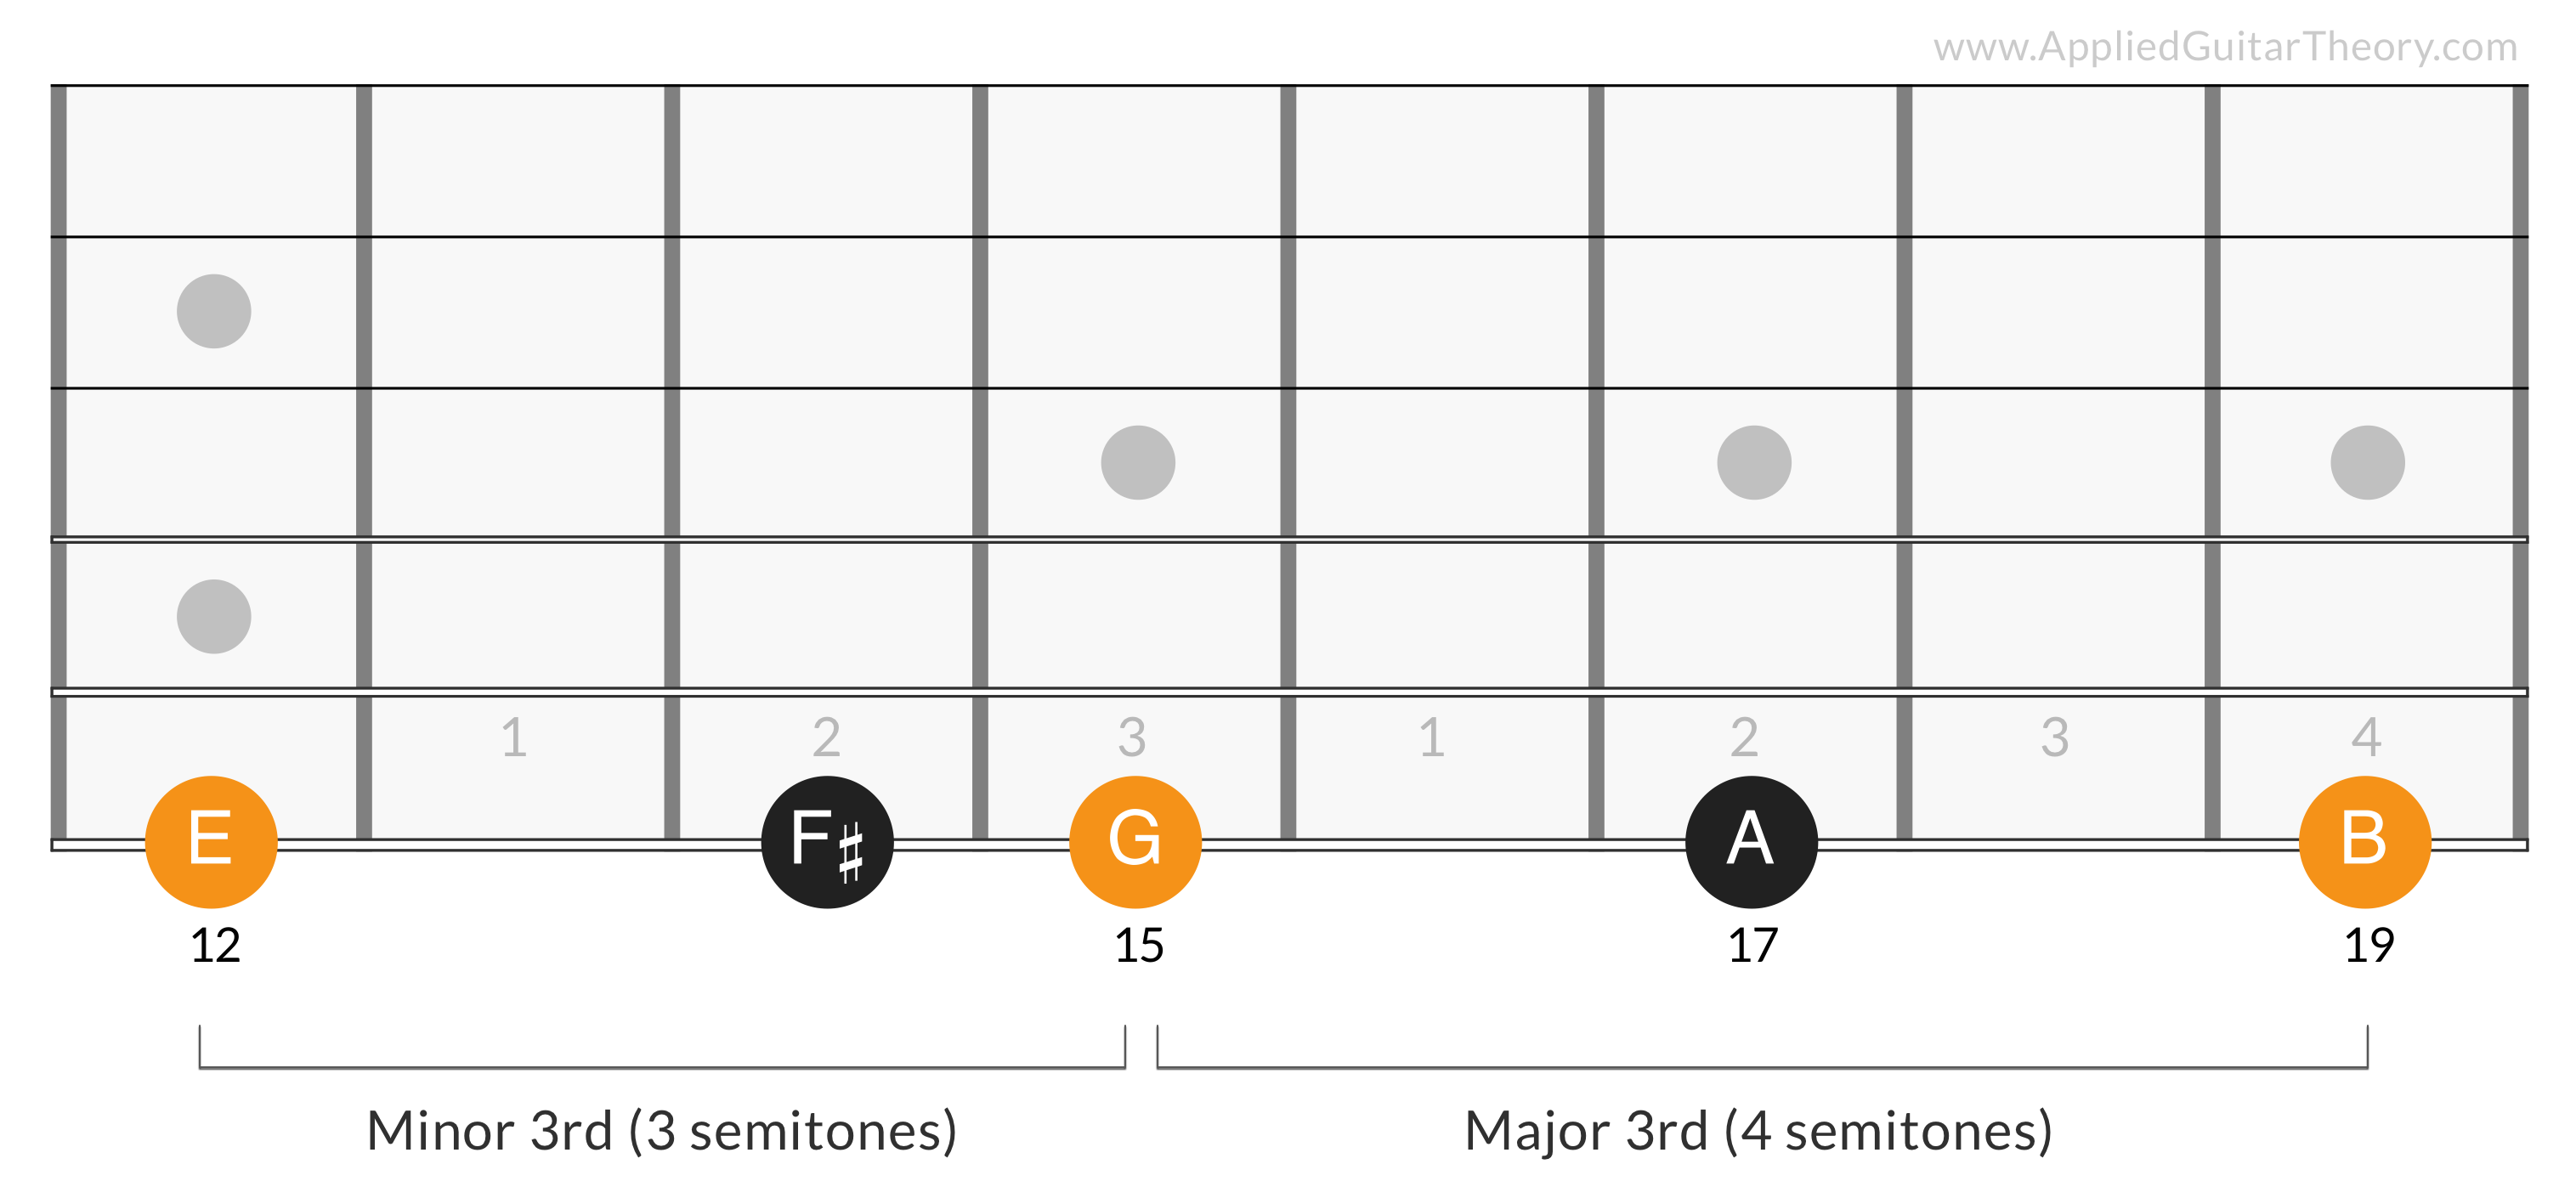 G Major Triad 6th Degree - E G B